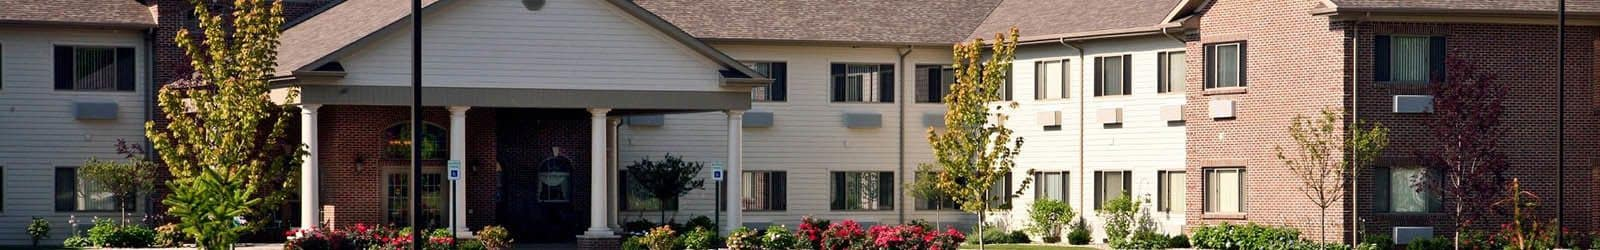 Senior living options at the senior living community in Valparaiso